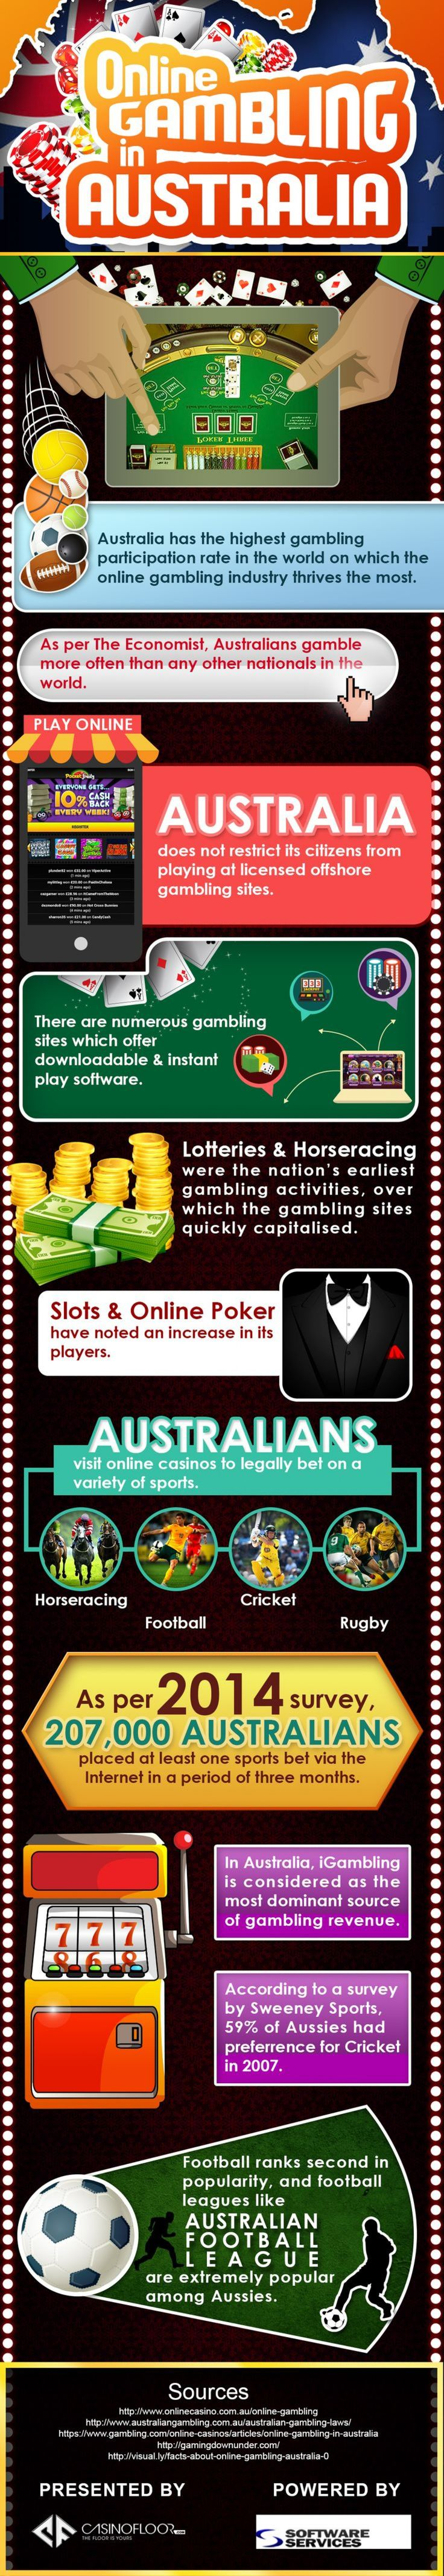 What Games Do These Casinos Offer